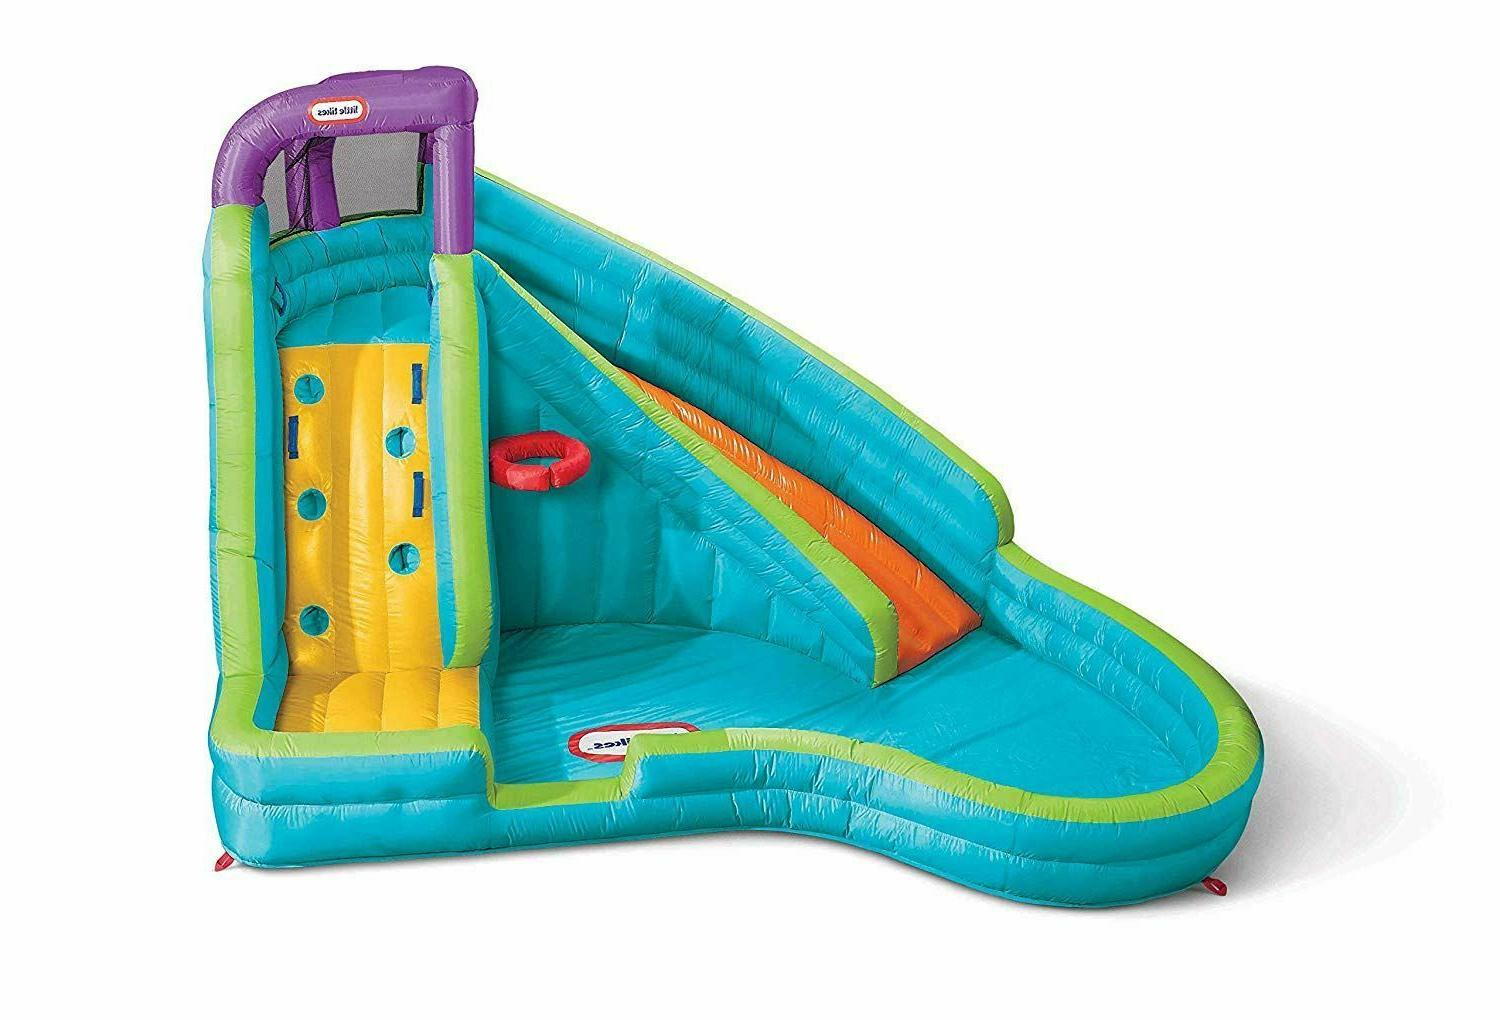 Inflatable Park Kids Slide Big Center Splash Blower